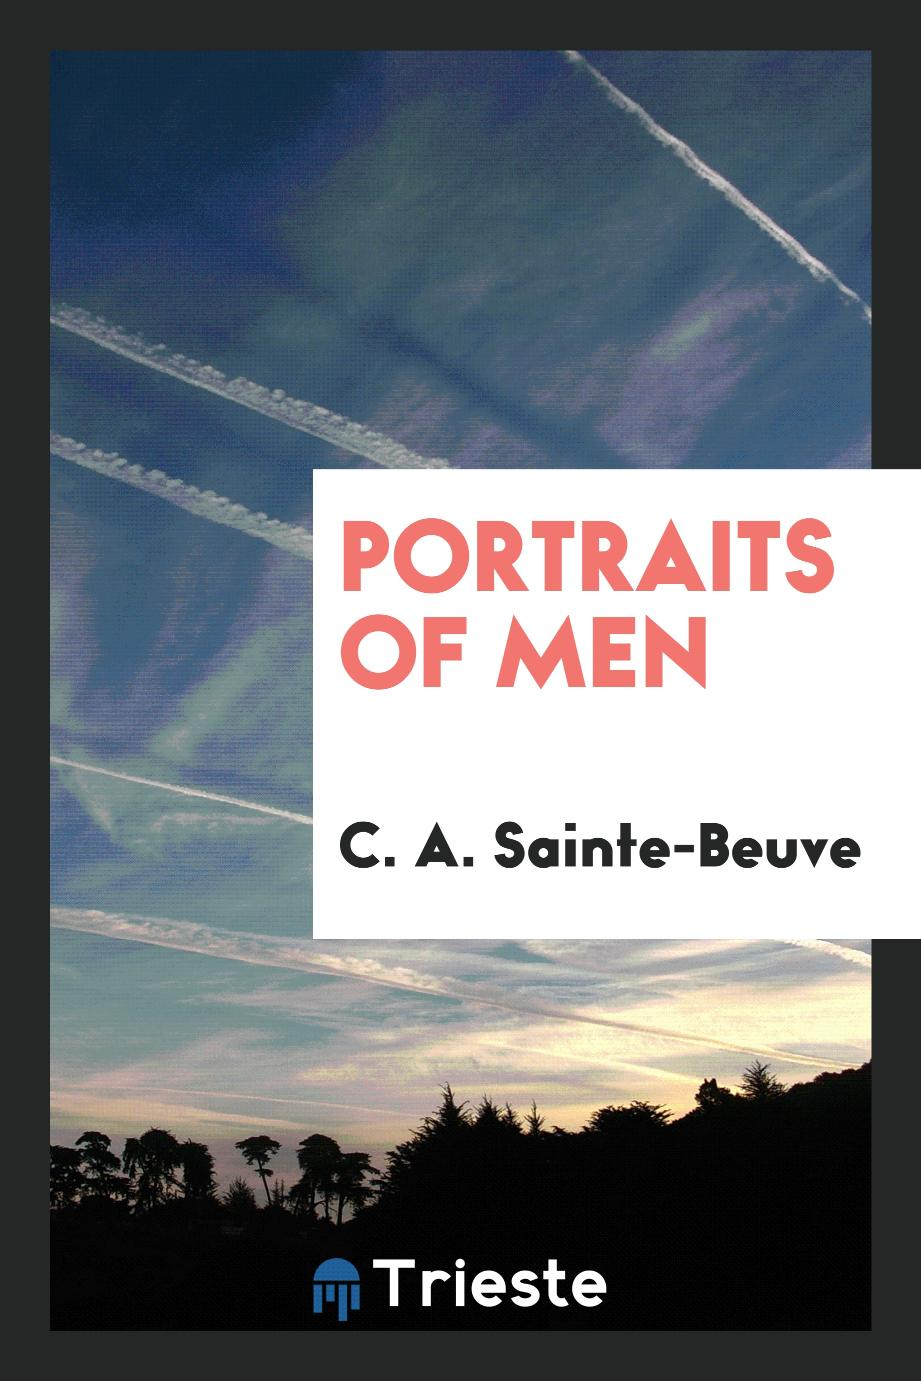 Portraits of men